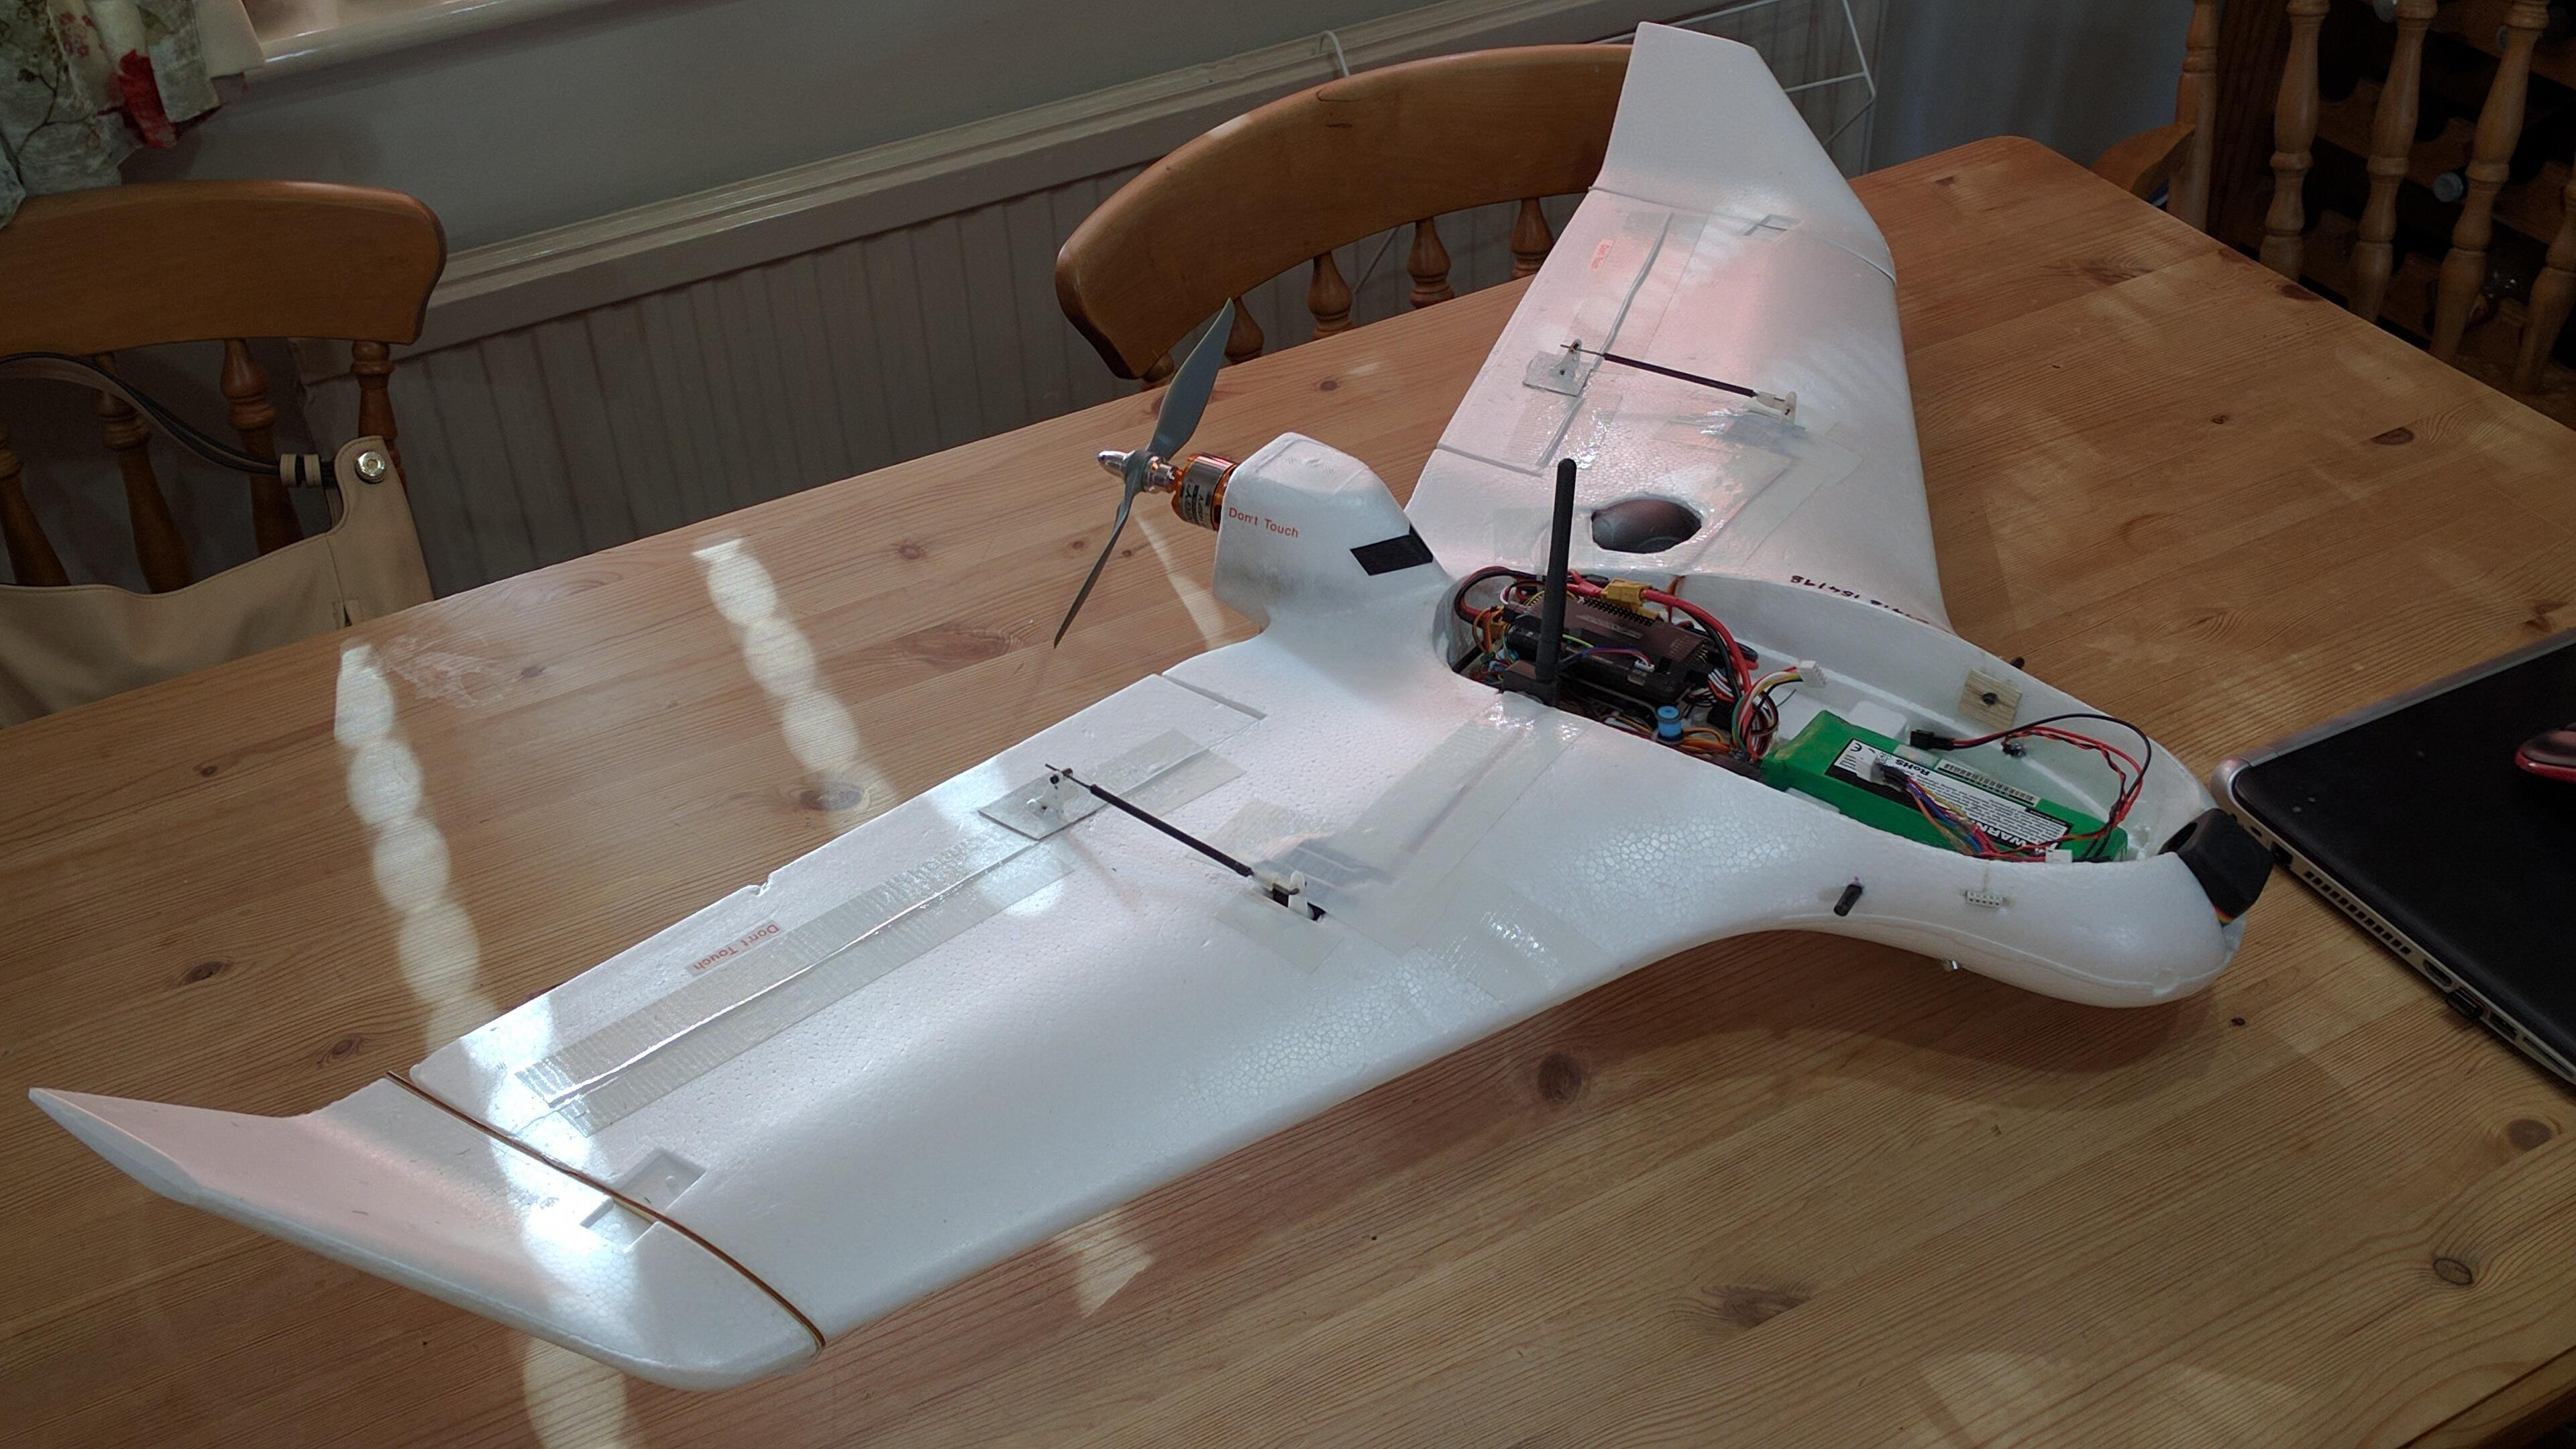 new build skywalker x5 ready for maiden flight with new. Black Bedroom Furniture Sets. Home Design Ideas